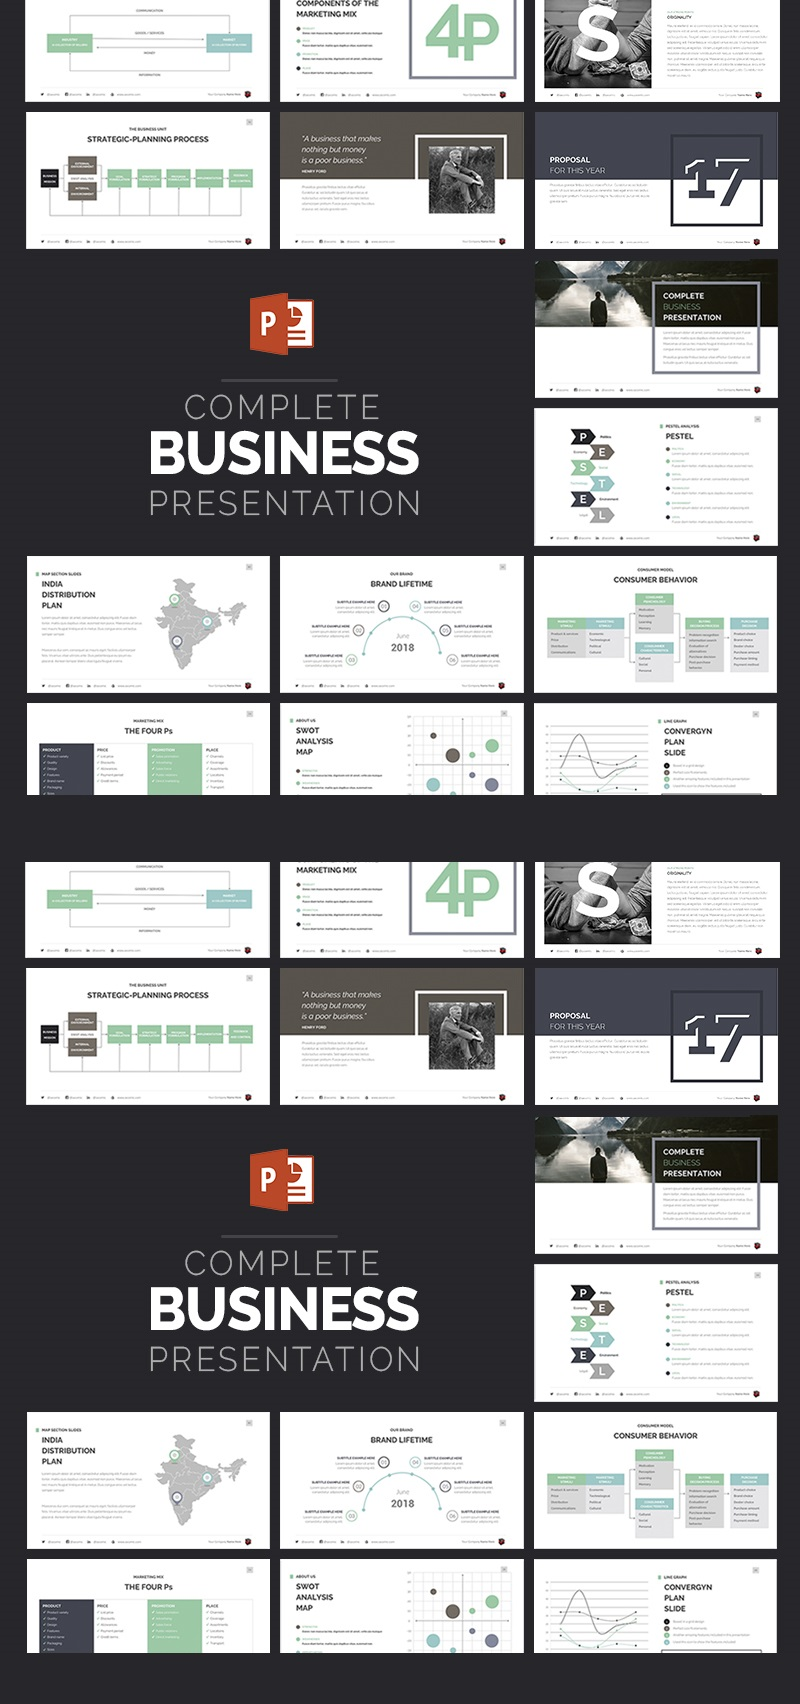 "PowerPoint Vorlage namens ""Complete Business Presentation"" #63510"